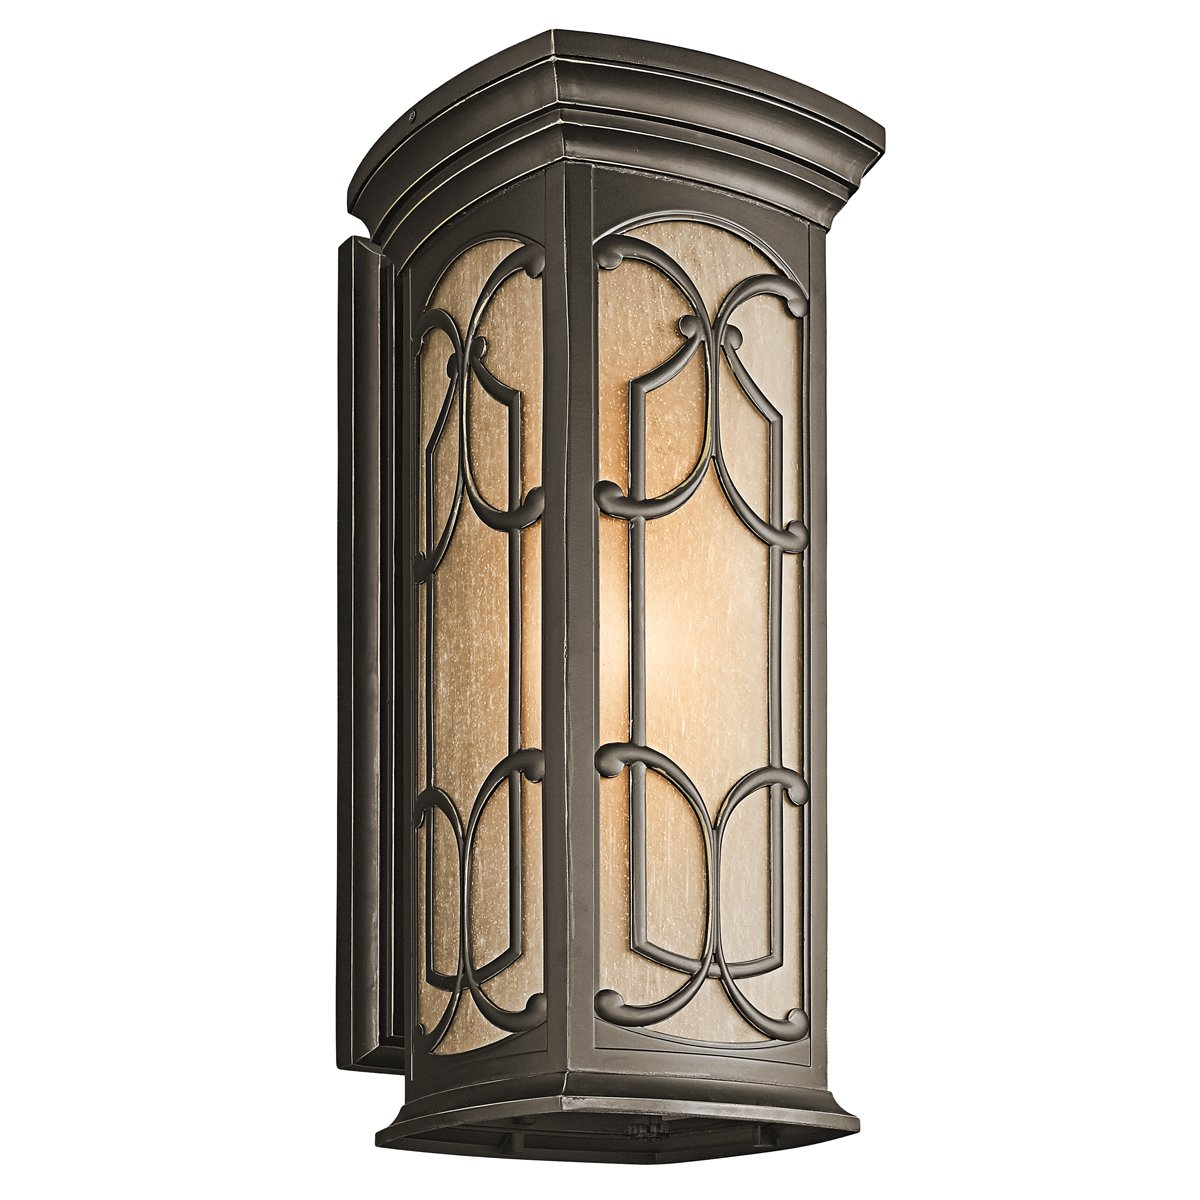 Outdoor led wall lantern olde bronze wall porch lights amazon com - Kichler Lighting 49227oz Franceasi 18 Inch Light Outdoor Wall Lantern Olde Bronze With Light Umber Seedy Glass Wall Porch Lights Amazon Com